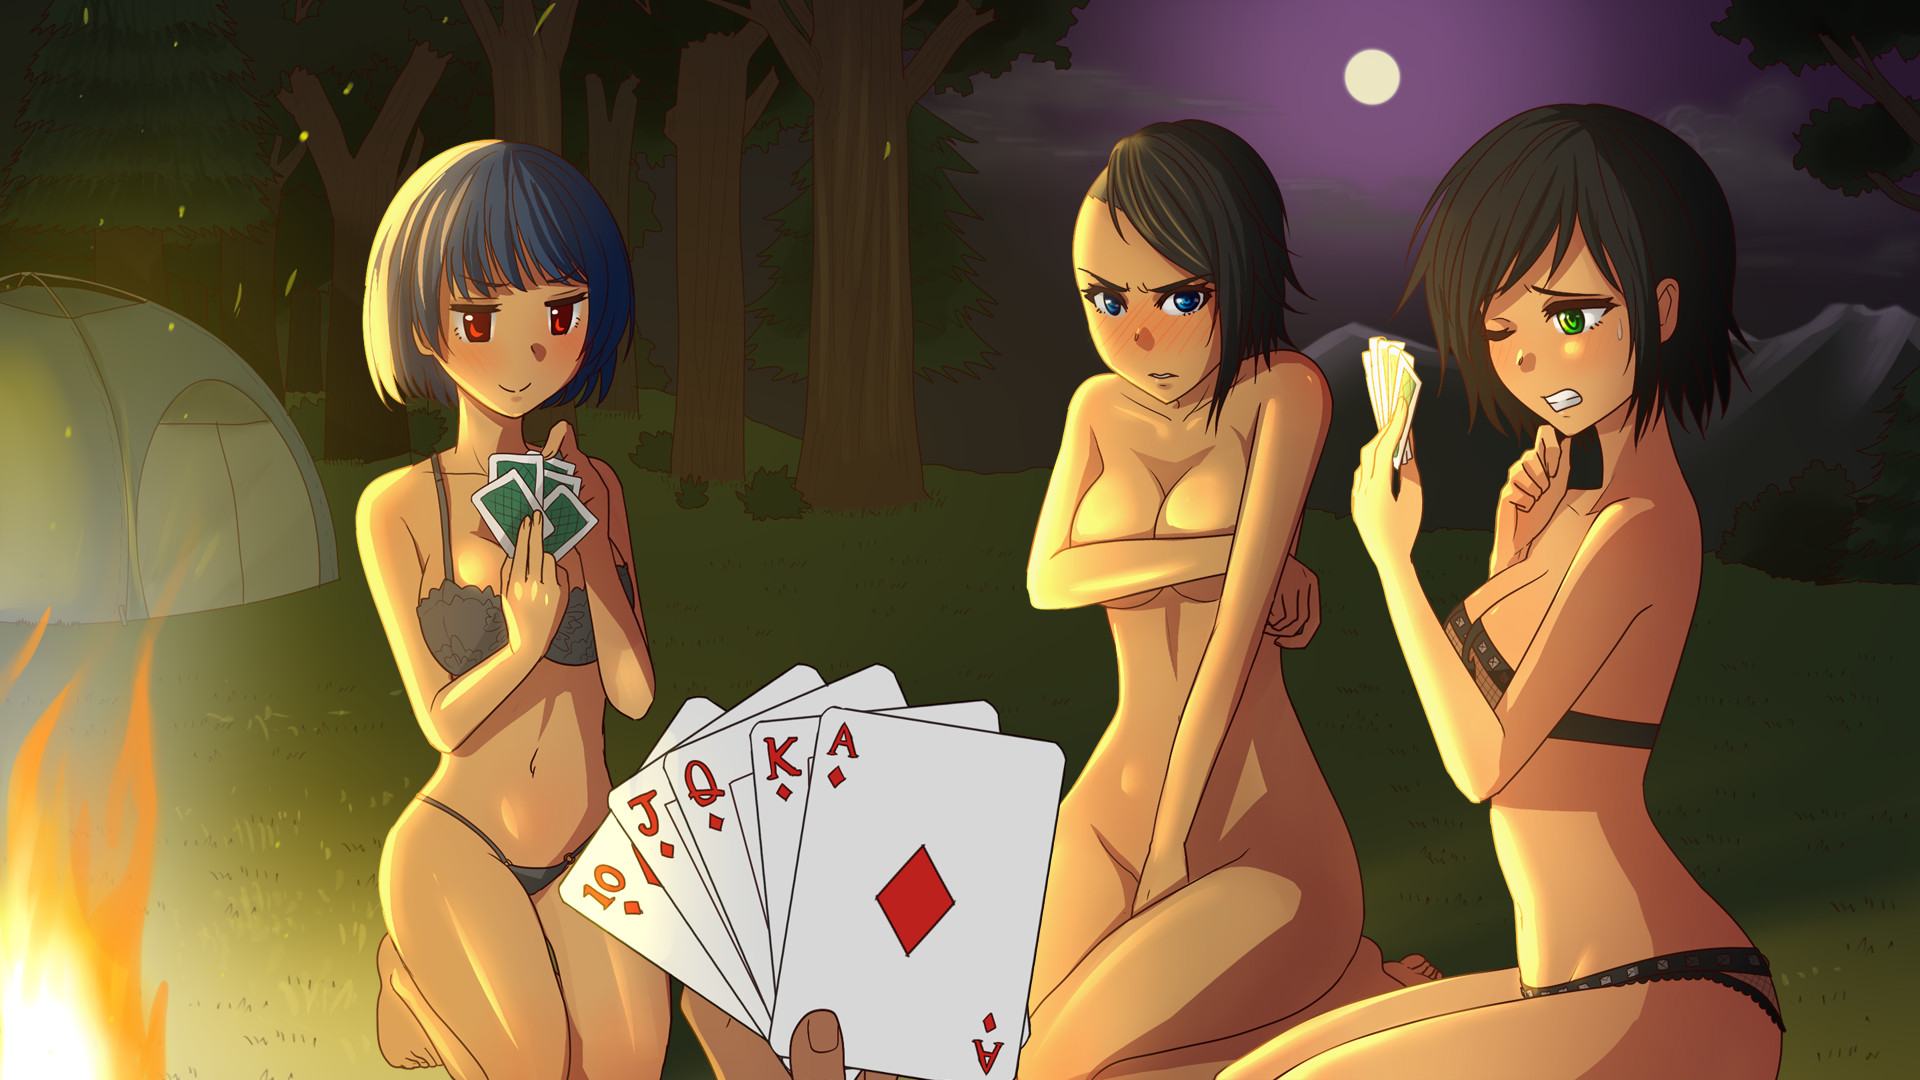 4 beautiful women play stripping a balancing game